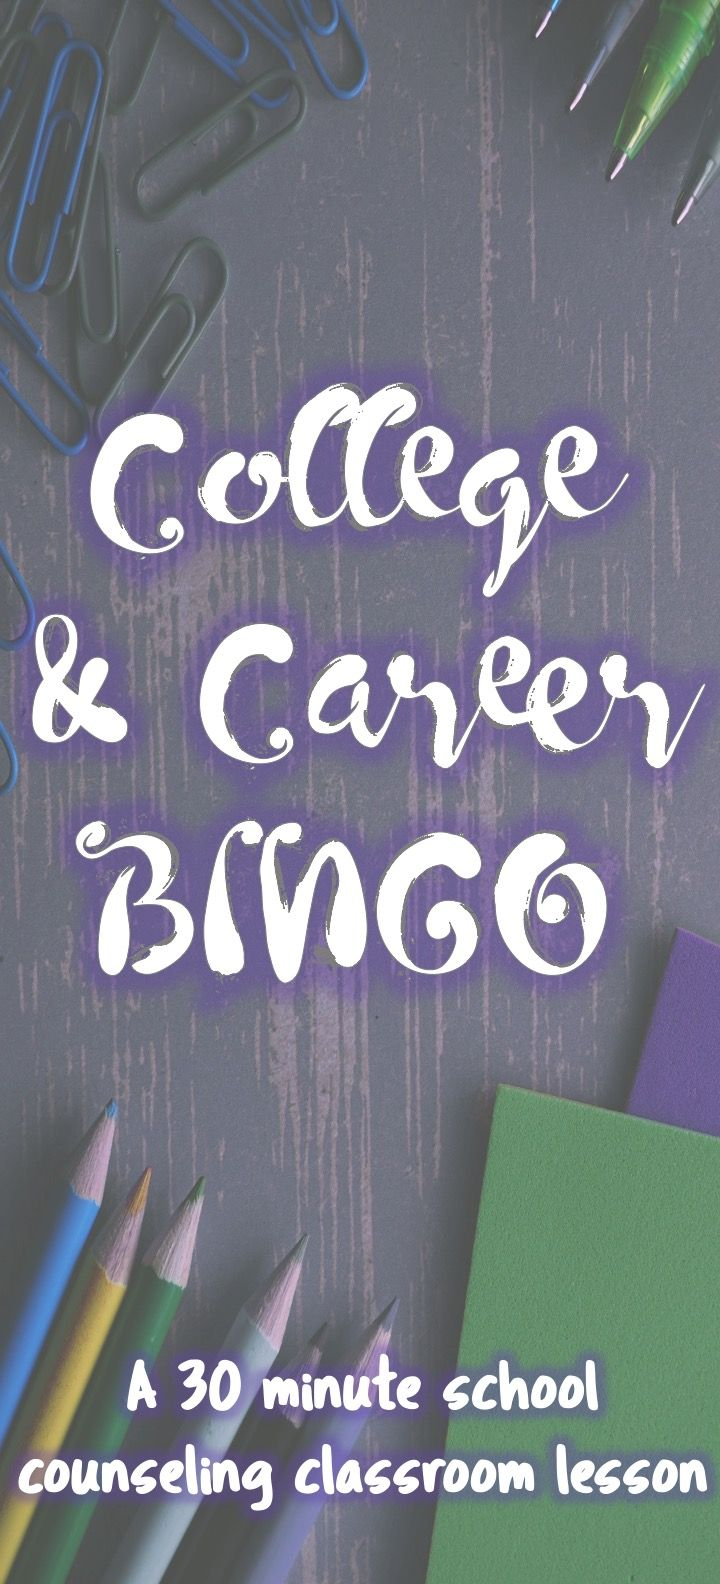 What better way to grow scholar self-efficacy in navigating the world of college and career education...than playing BINGO! This lesson provides base level information to facilitate additional college and career school discussion in the classroom, including related vocabulary and a brief introduction to financial aid.